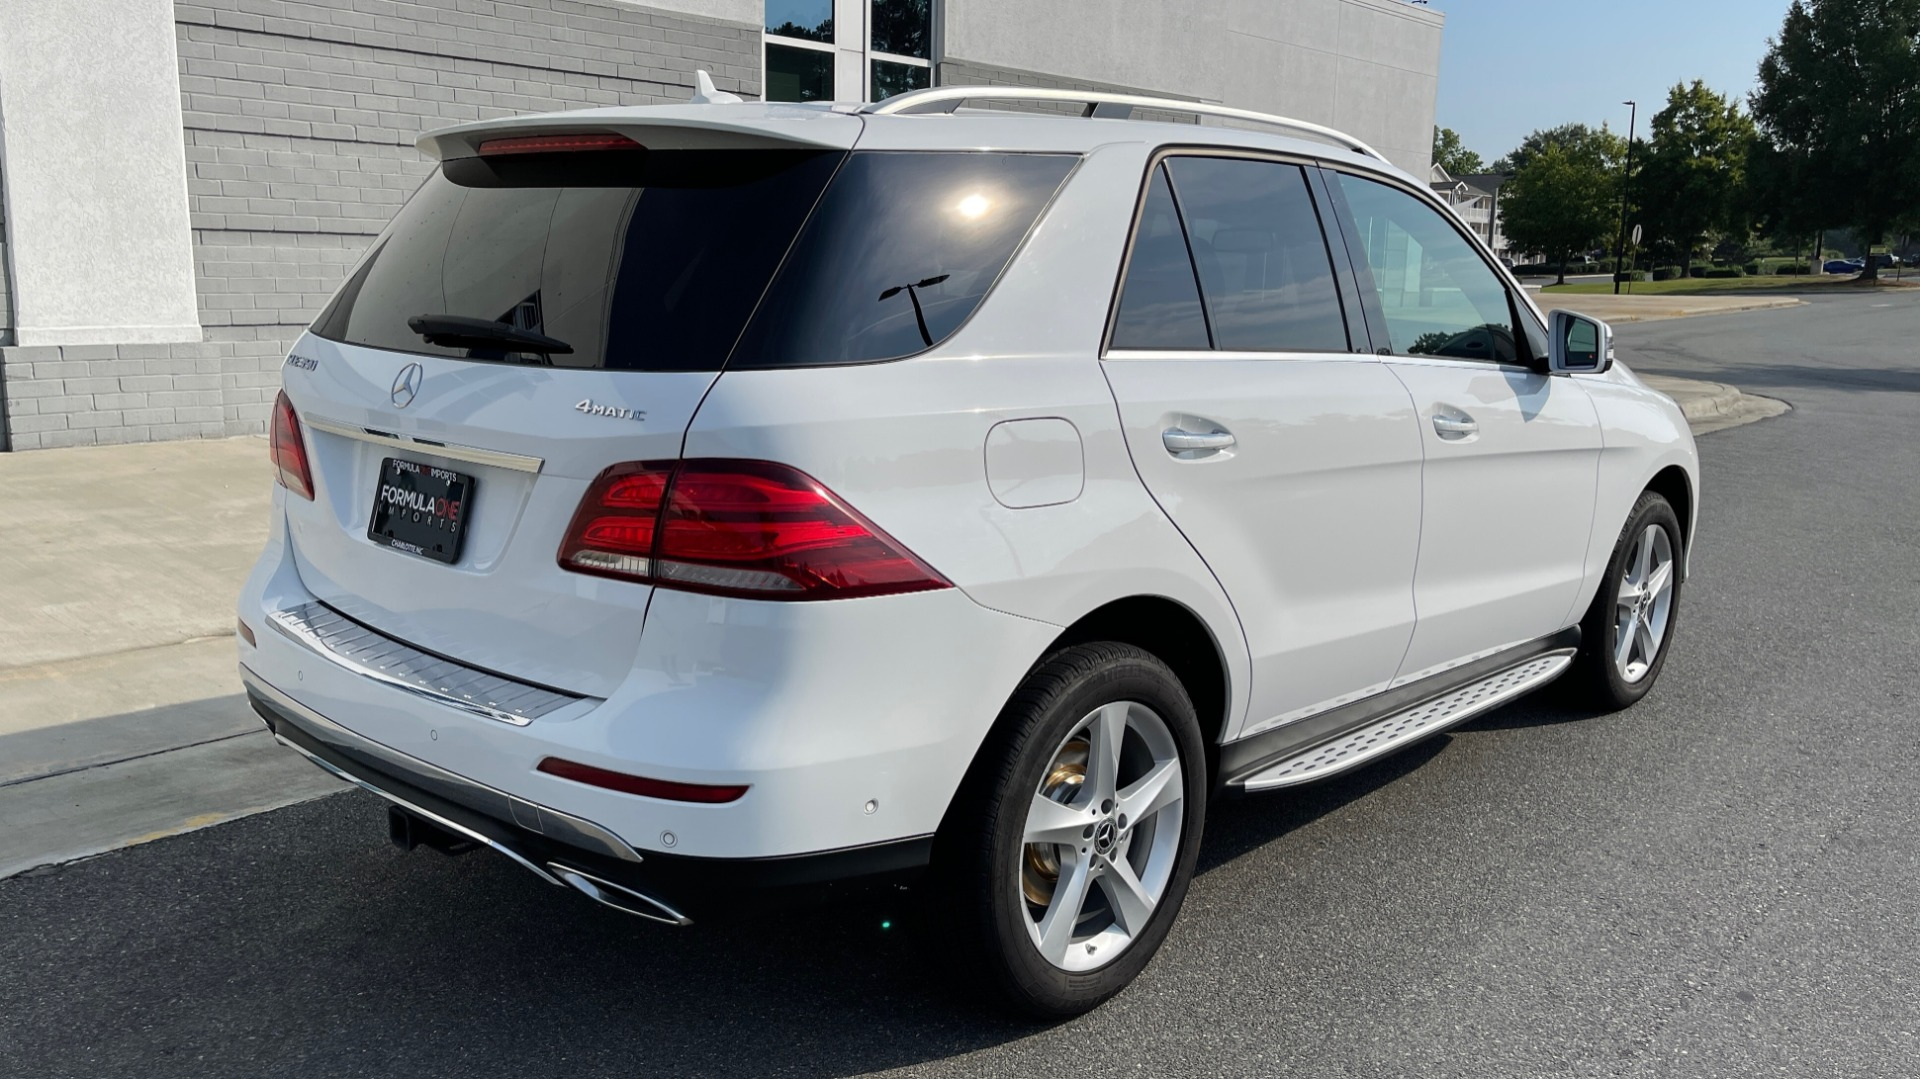 Used 2018 Mercedes-Benz GLE 350 4MATIC PREMIUM / NAV / SUNROOF / HTD STS / TRAILER HITCH / REARVIEW for sale $36,295 at Formula Imports in Charlotte NC 28227 2